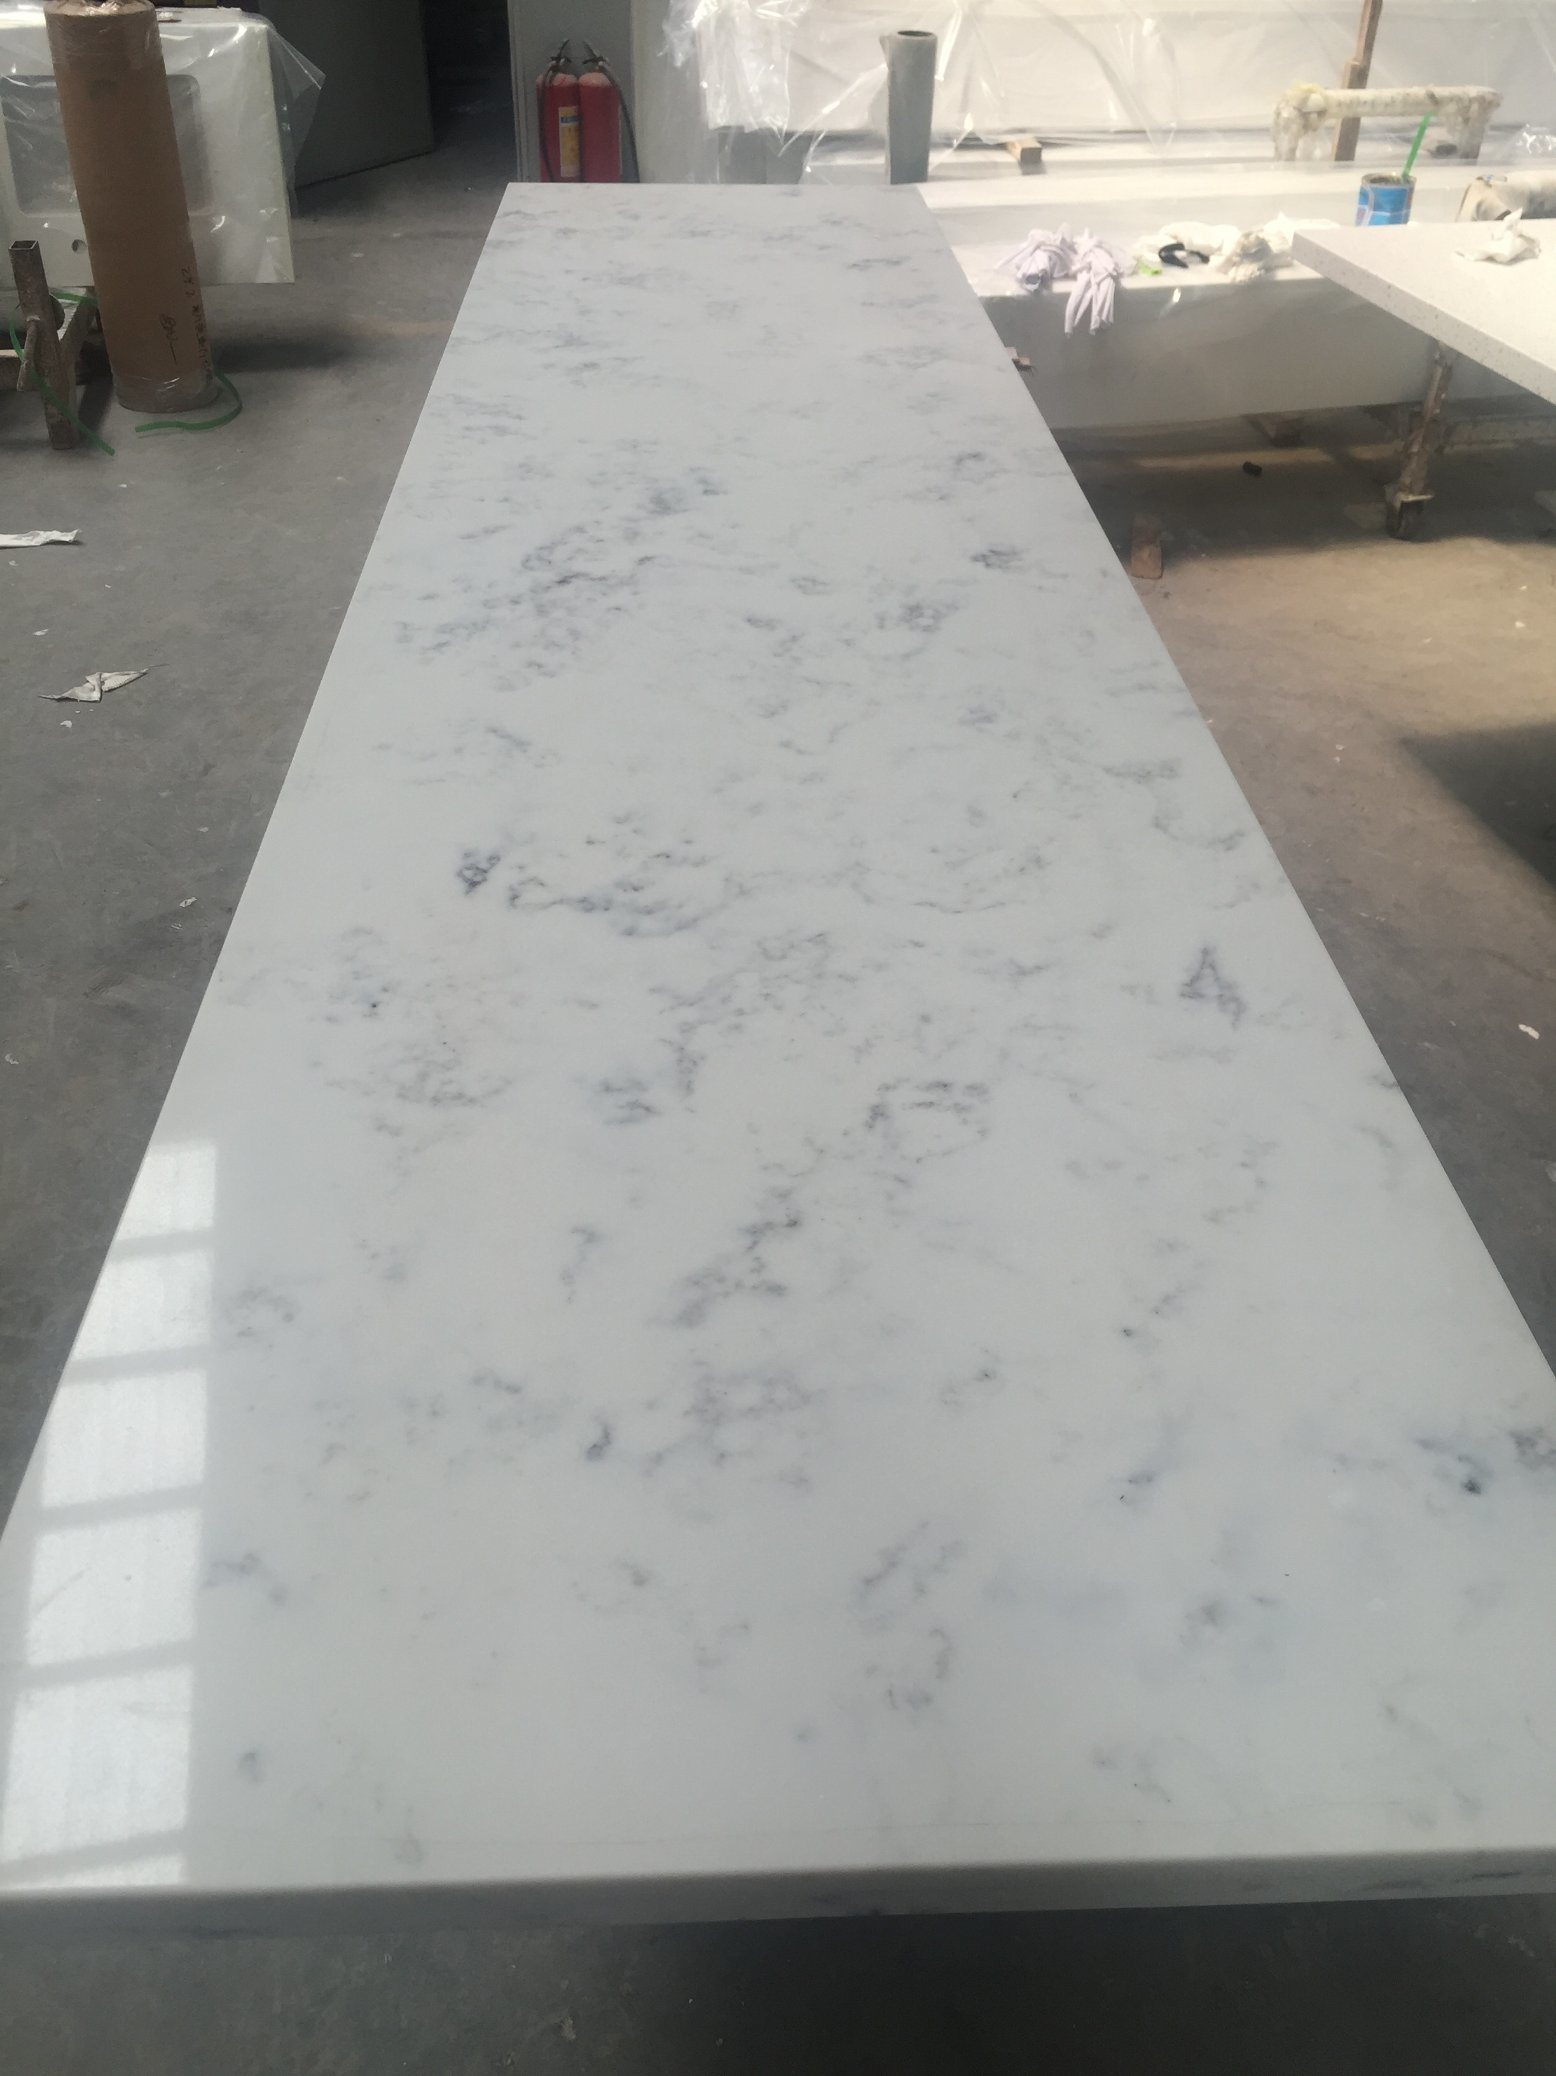 Google Image Result For Https Image Made In China Com 2f0j00ettfiemksscg Carrara White Quartz V117 Countertop Kit Marble Bar Top White Quartz Kitchen Worktop